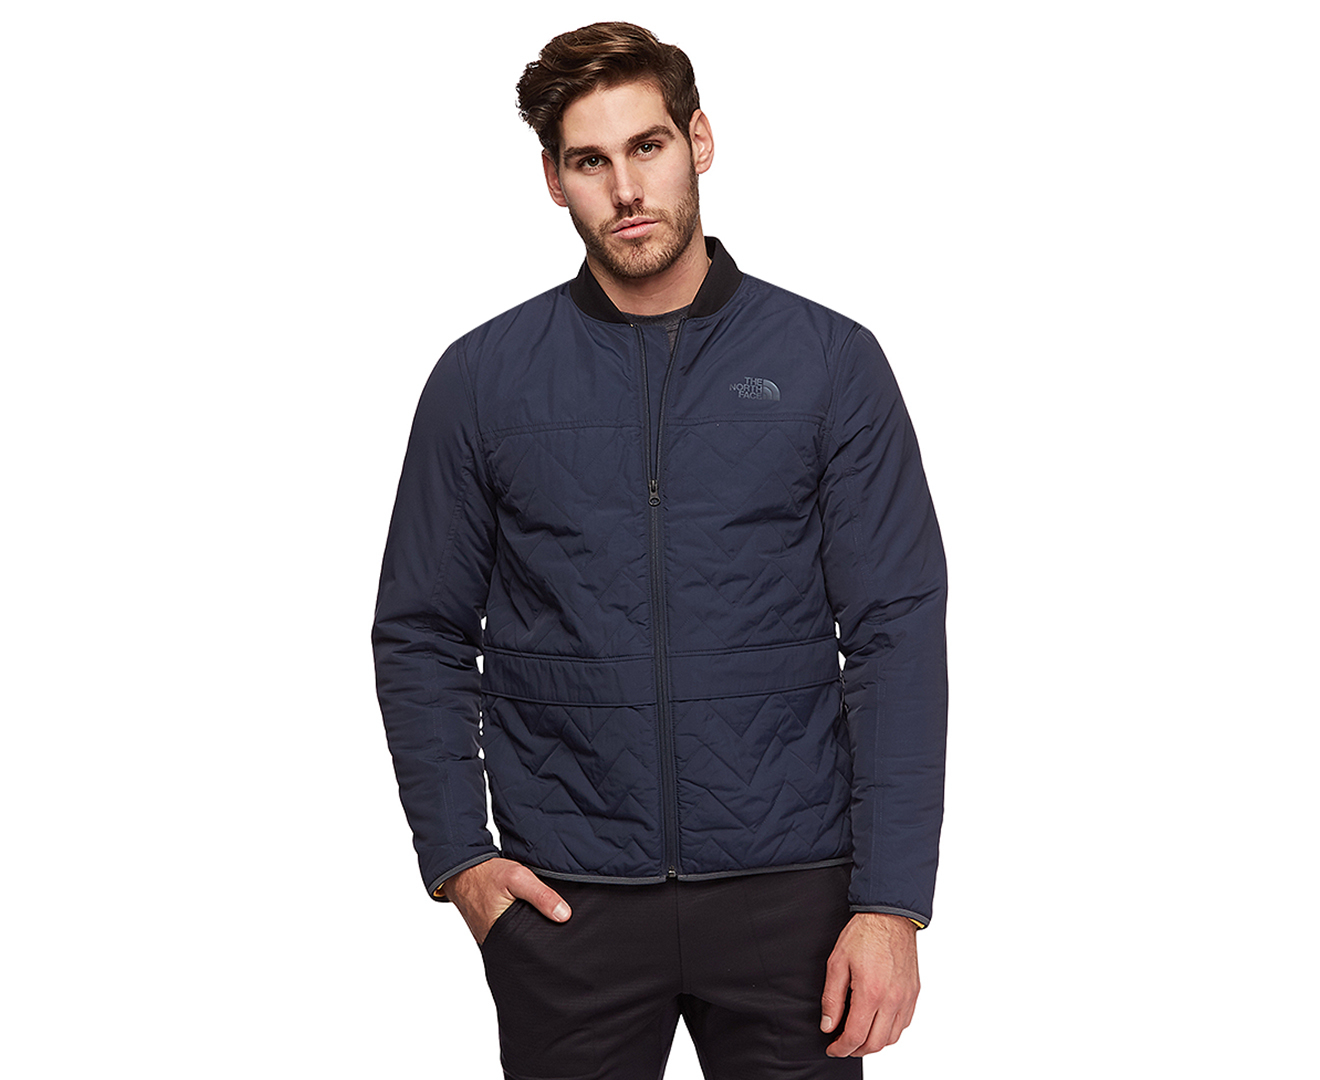 fbb9bbd43a43 The North Face Men s Westborough Insulated Bomber Jacket - Urban Navy